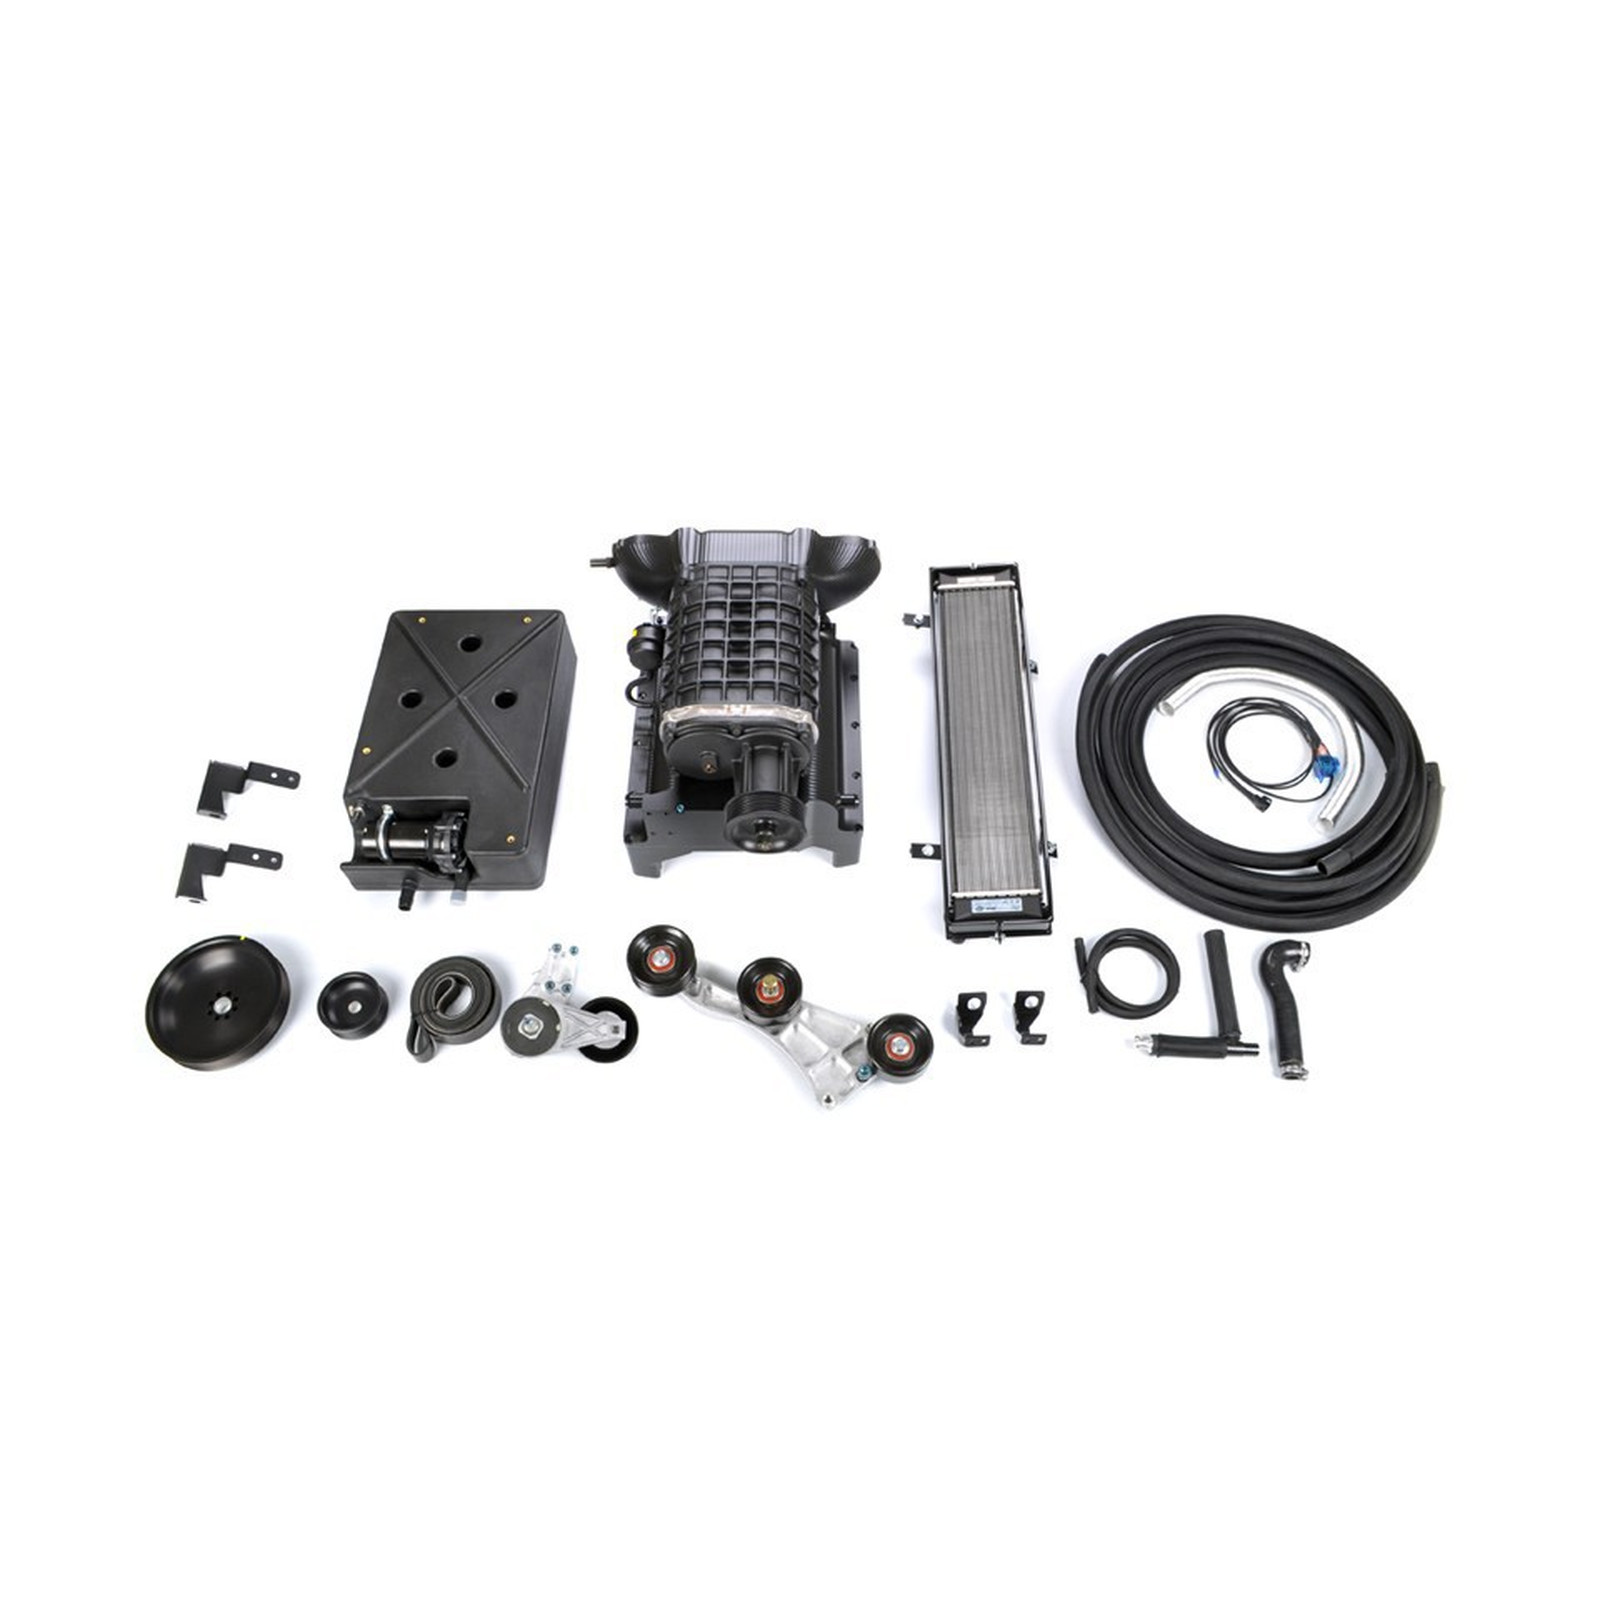 Turbo Kit Audi R8 V10: Vf Supercharger Kit Audi R8 V8, 23.601,67